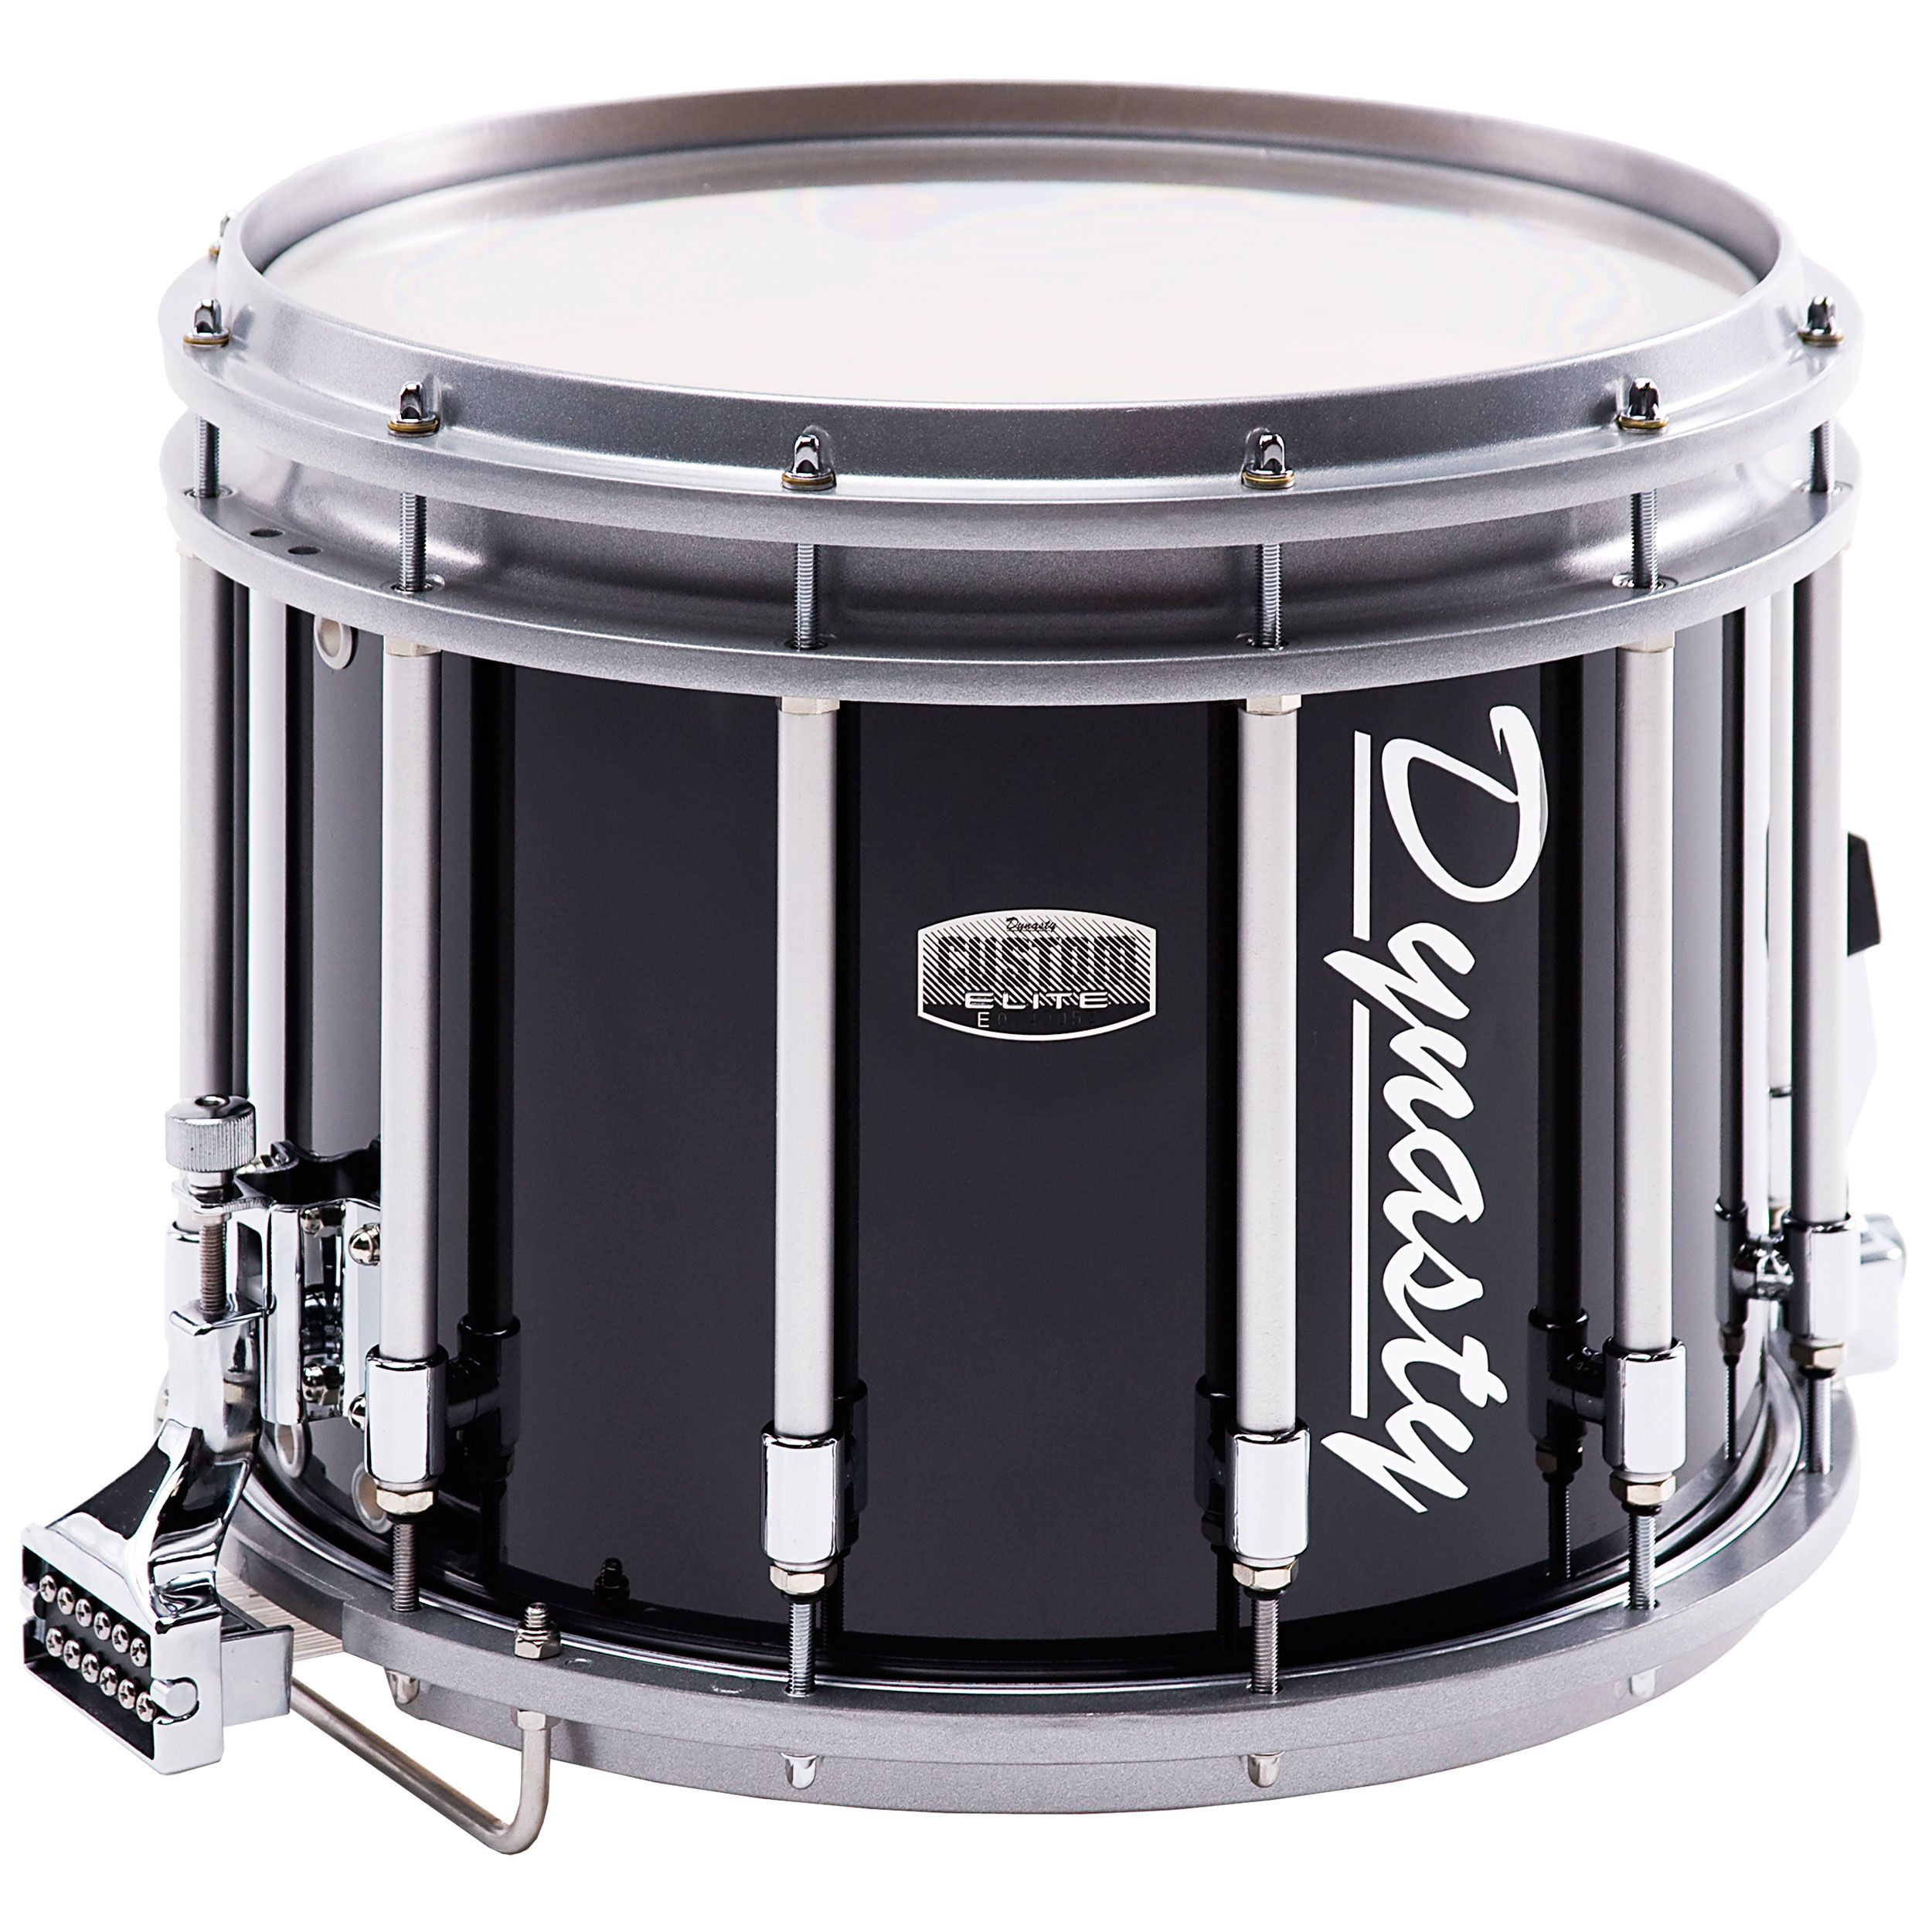 Marching Snare Drums Marching Snare Drum Marching Snare Snare Drum